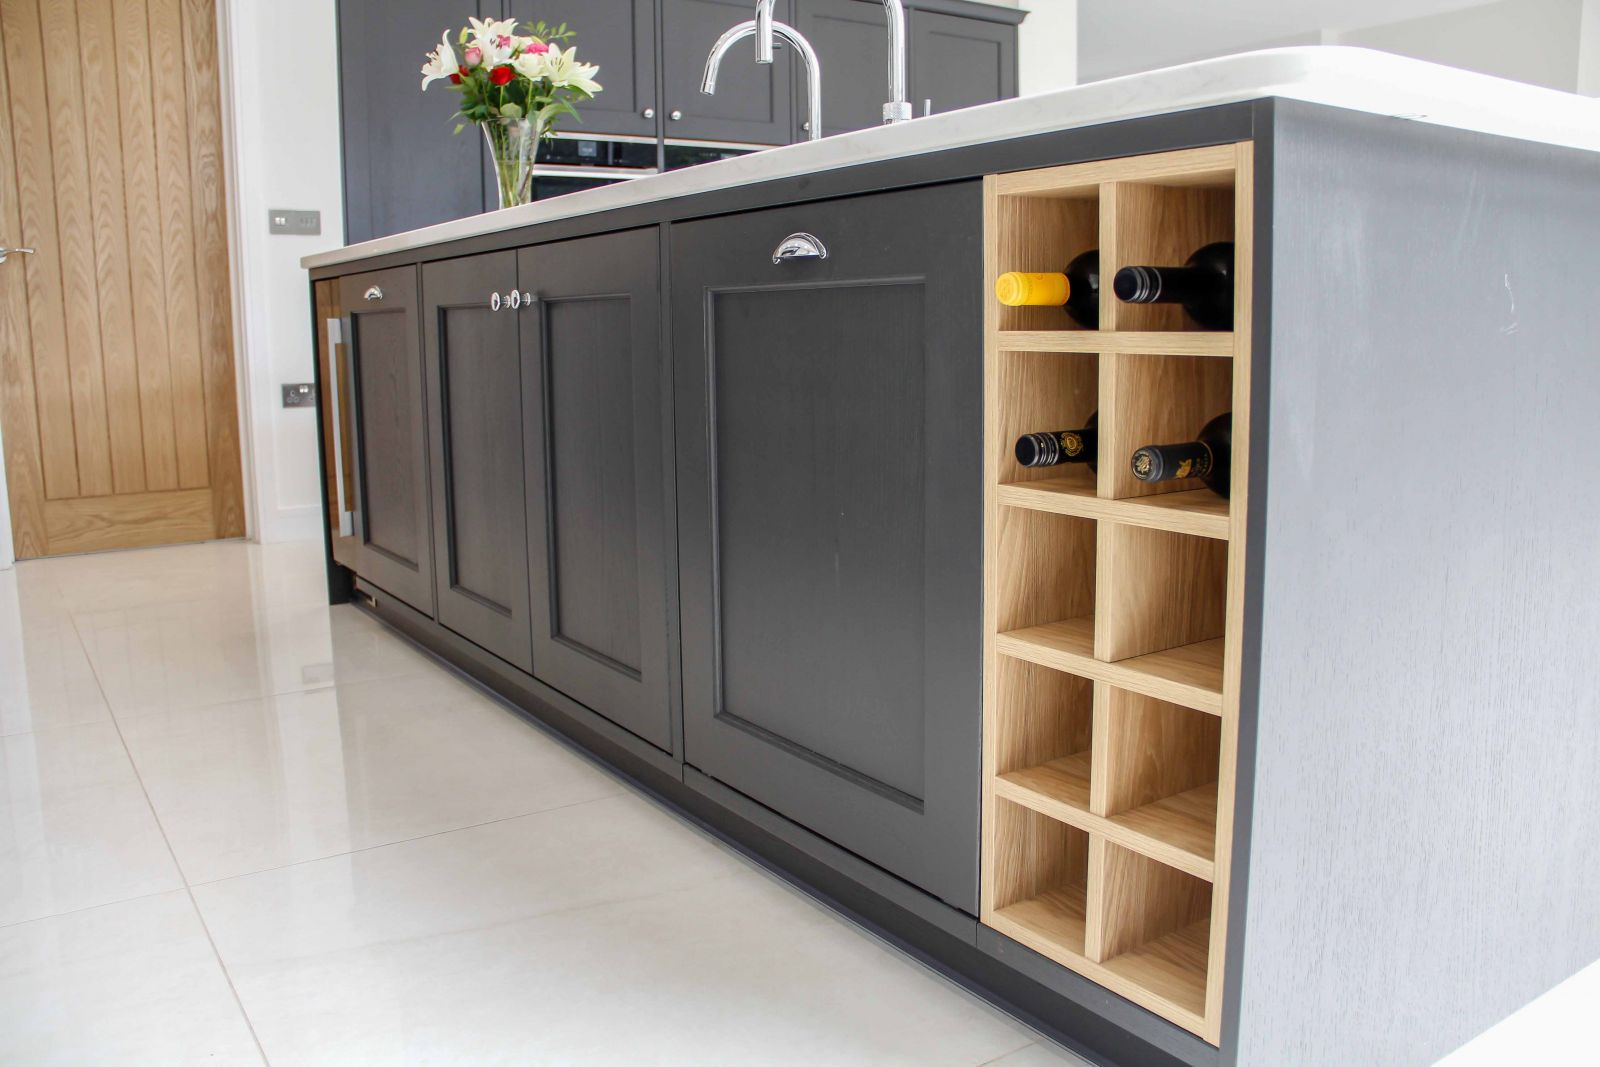 Classic Shaker Kitchen in Grey and White with Wine Rack by Sigma 3 Kitchens